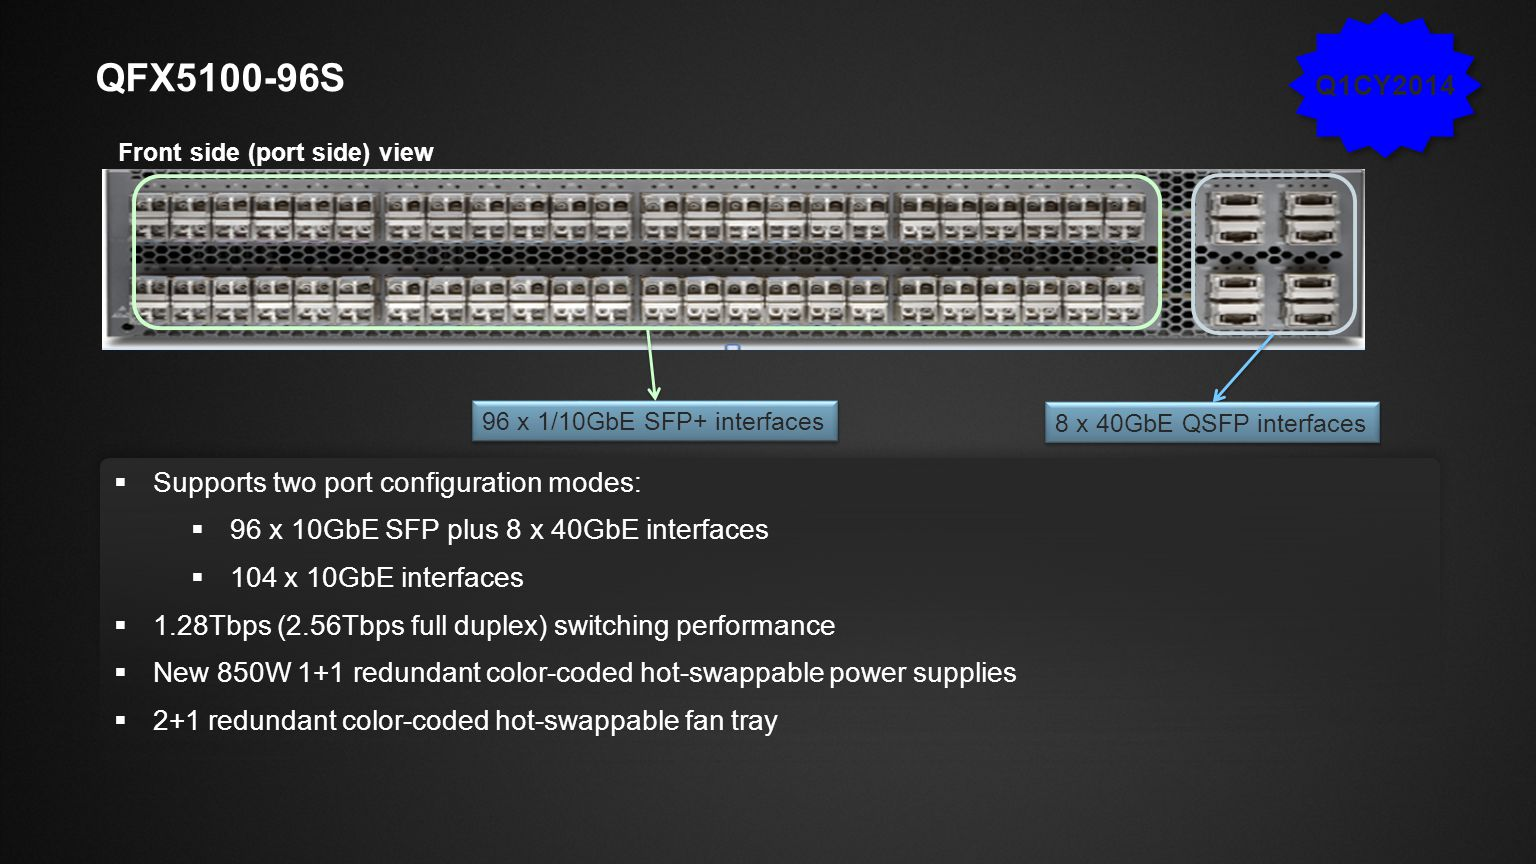 QFX5100-96s Q1CY2014 Supports two port configuration modes: